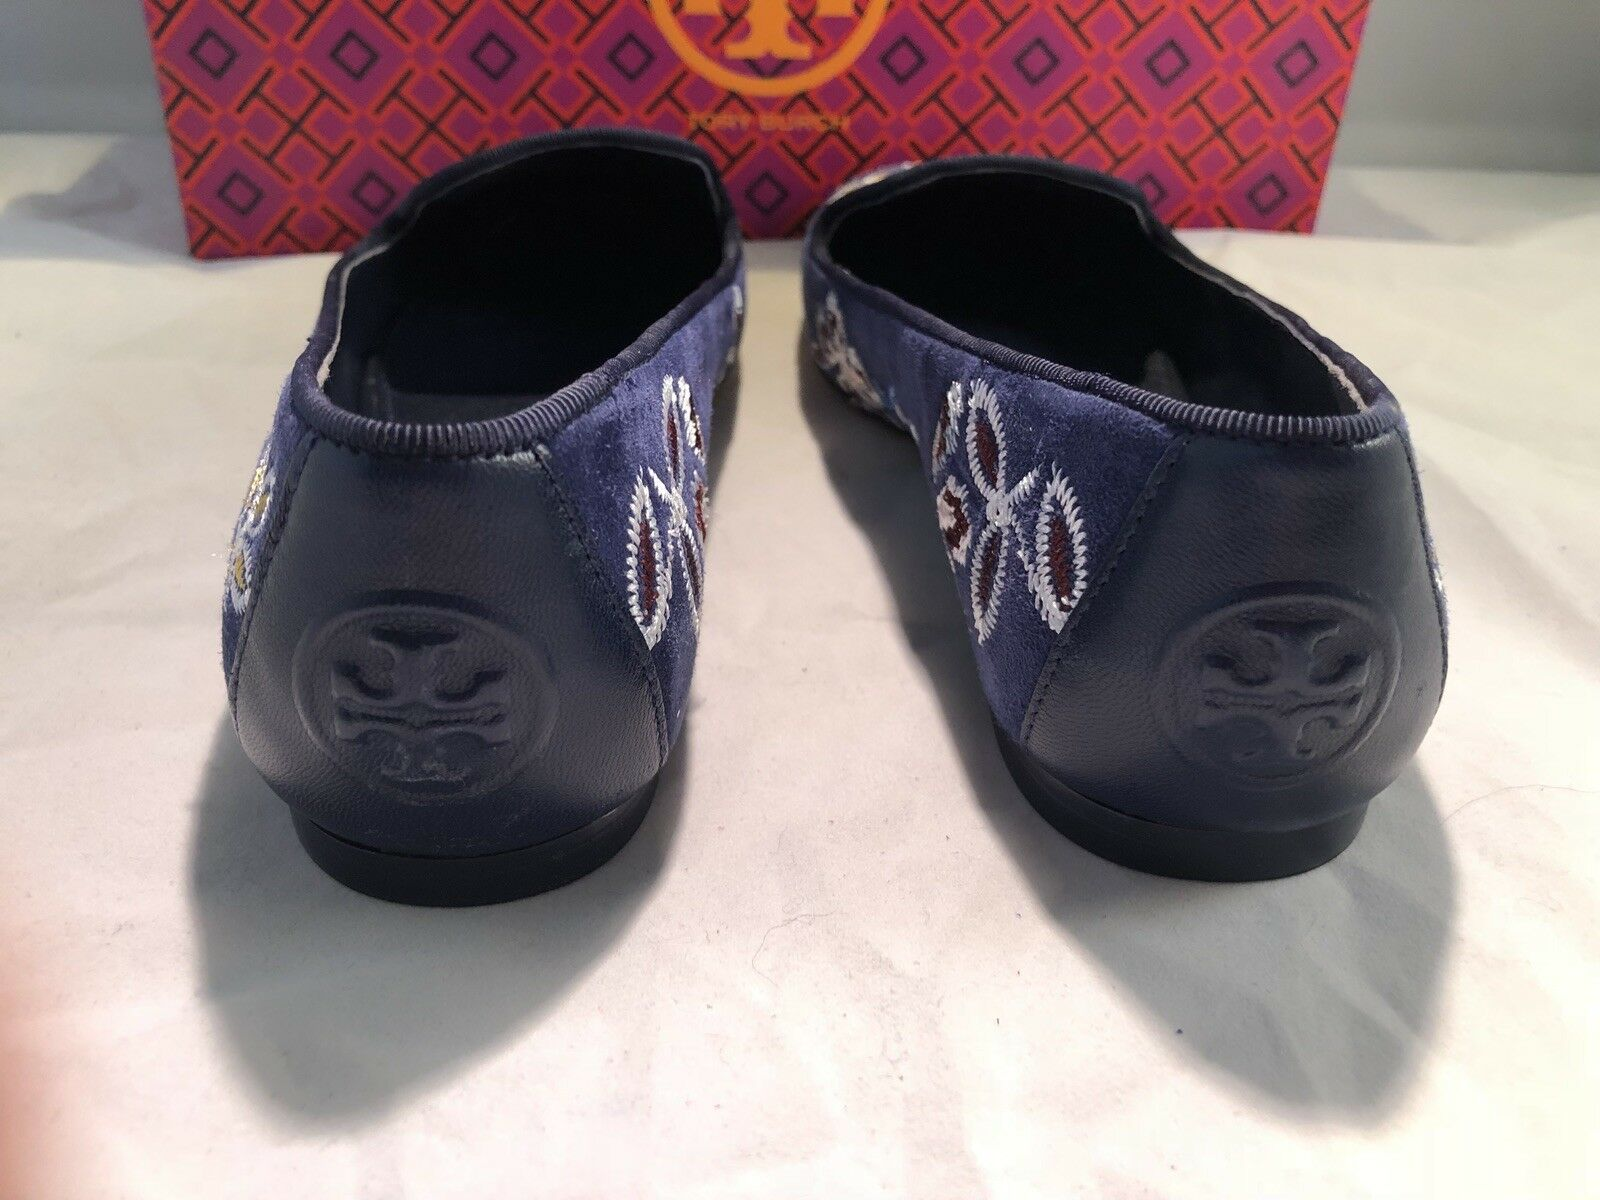 TORY BURCH blueE SUEDE SUEDE SUEDE FLORAL EMBROIDERED FLAT WOMEN'S SIZE 5.5   295 a74249